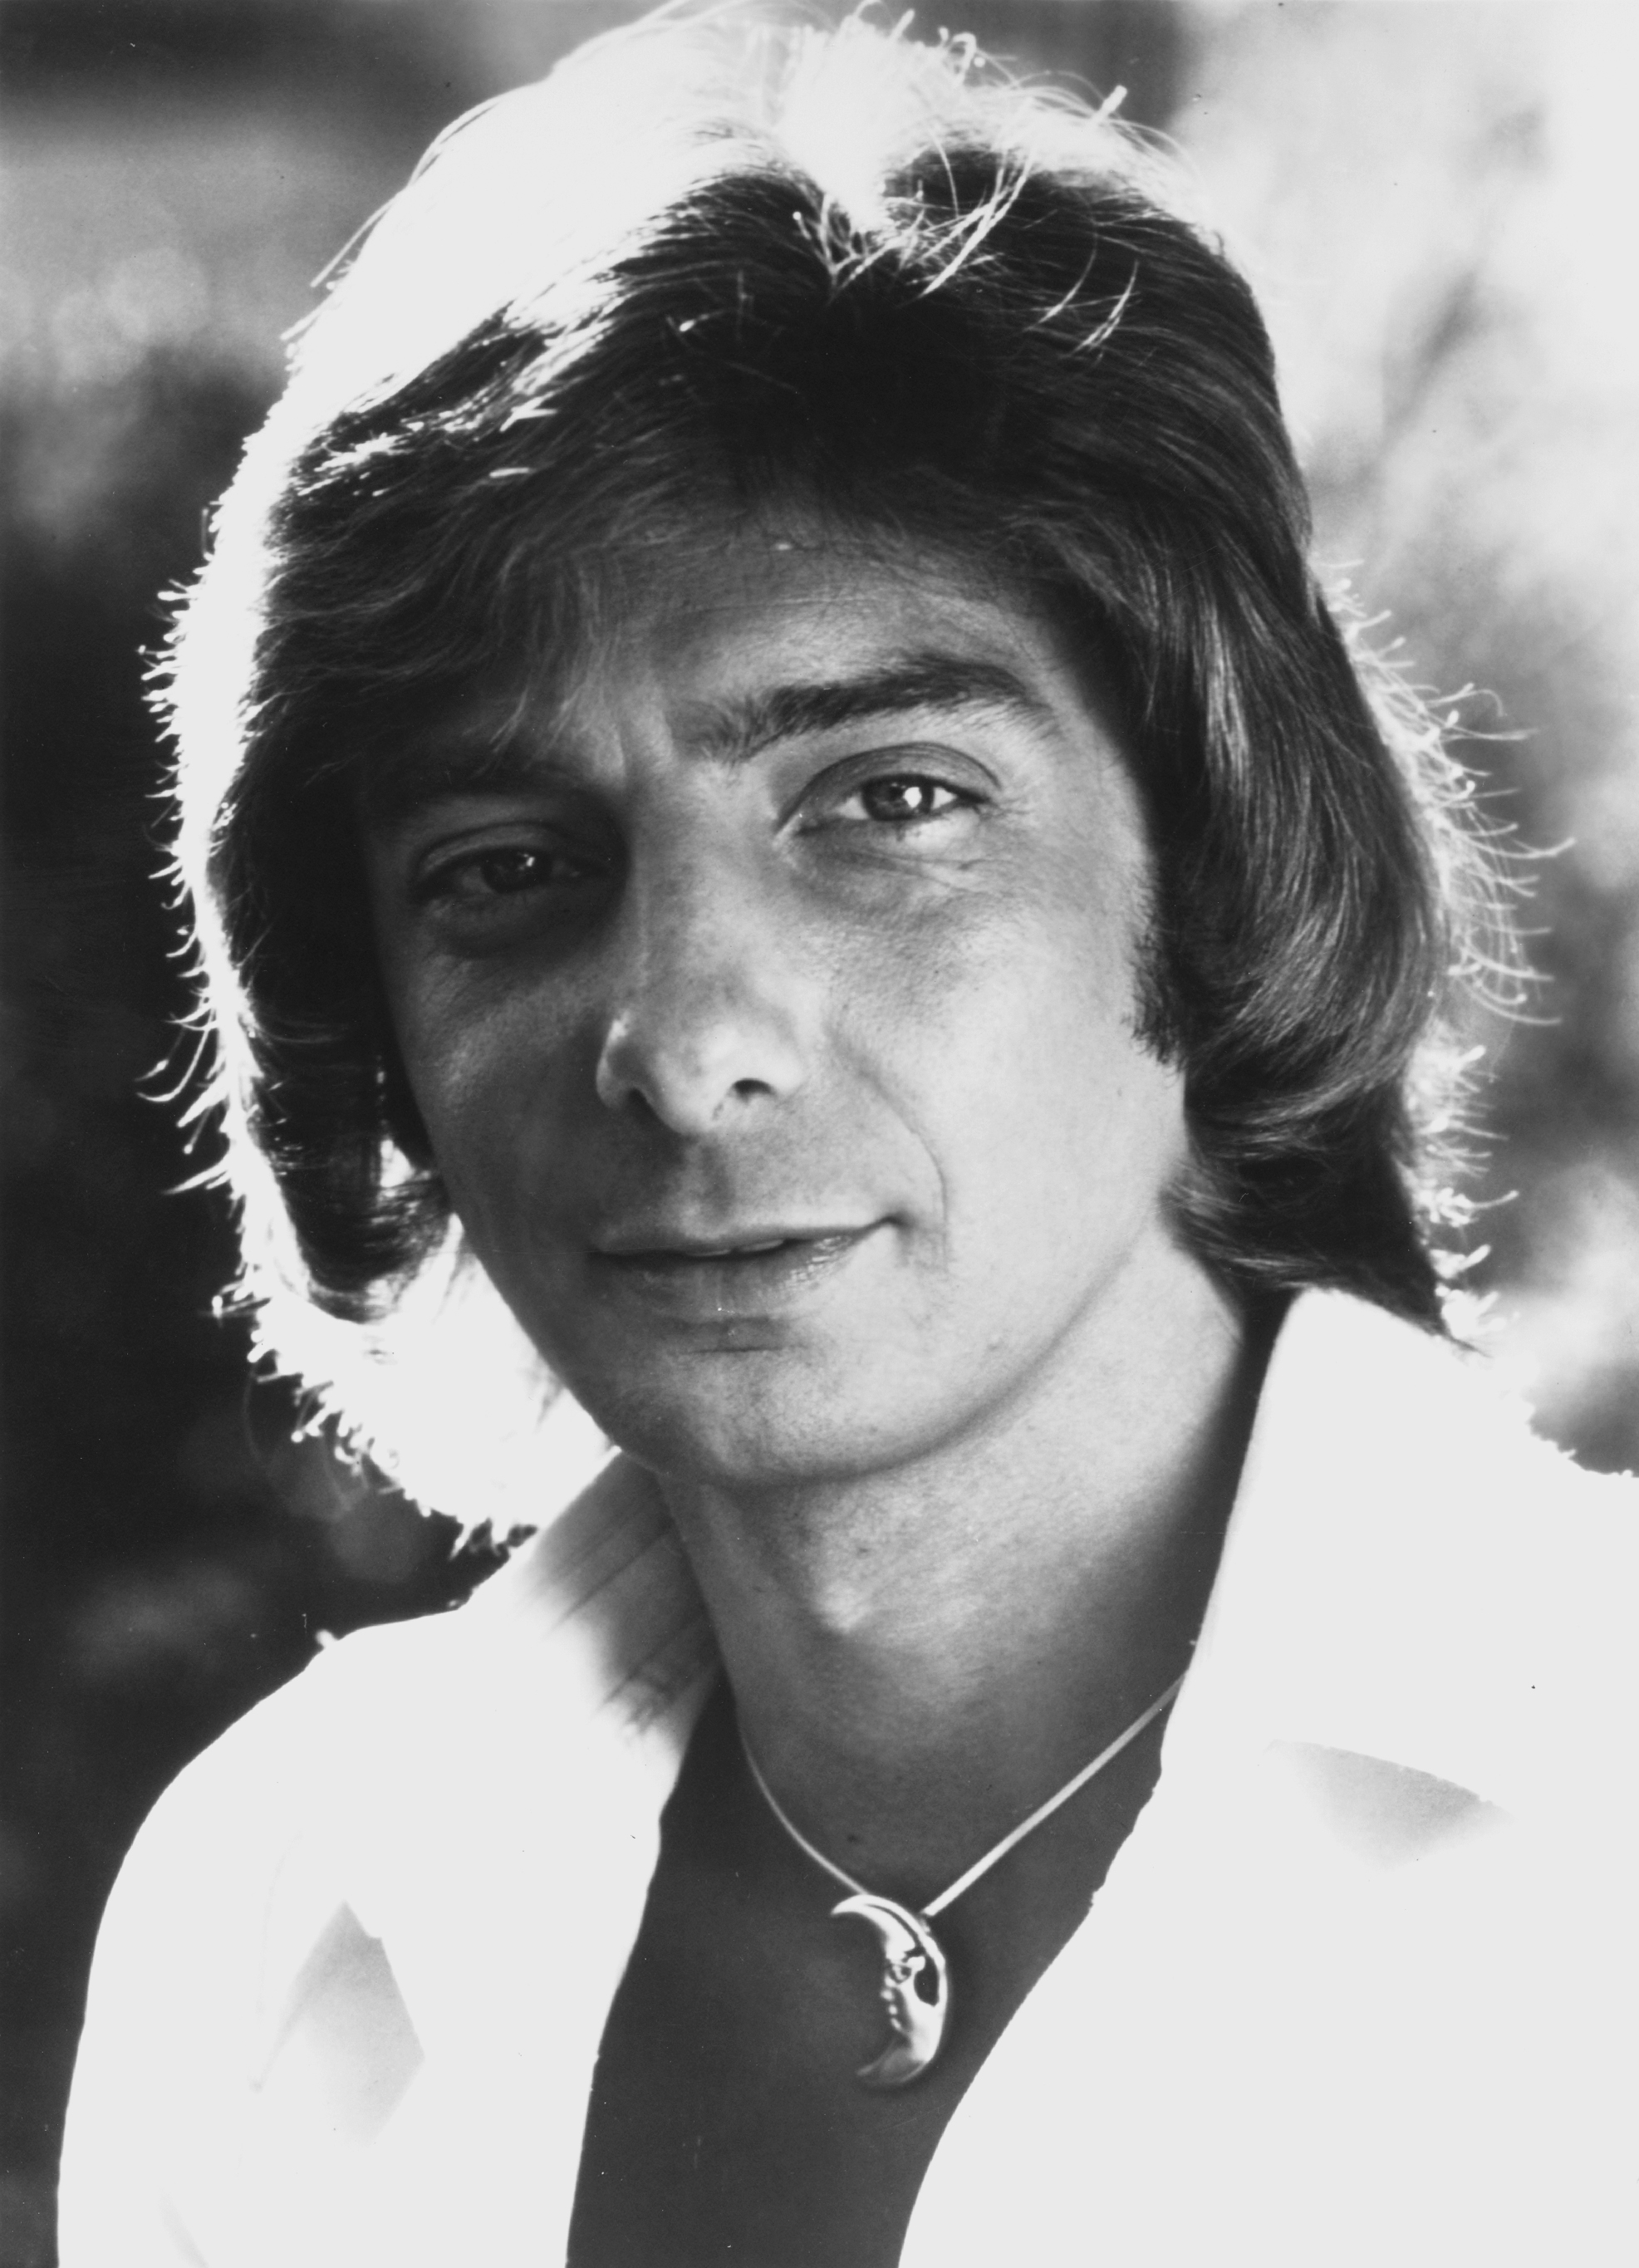 Barry Manilow - SpotifyThrowbacks.com